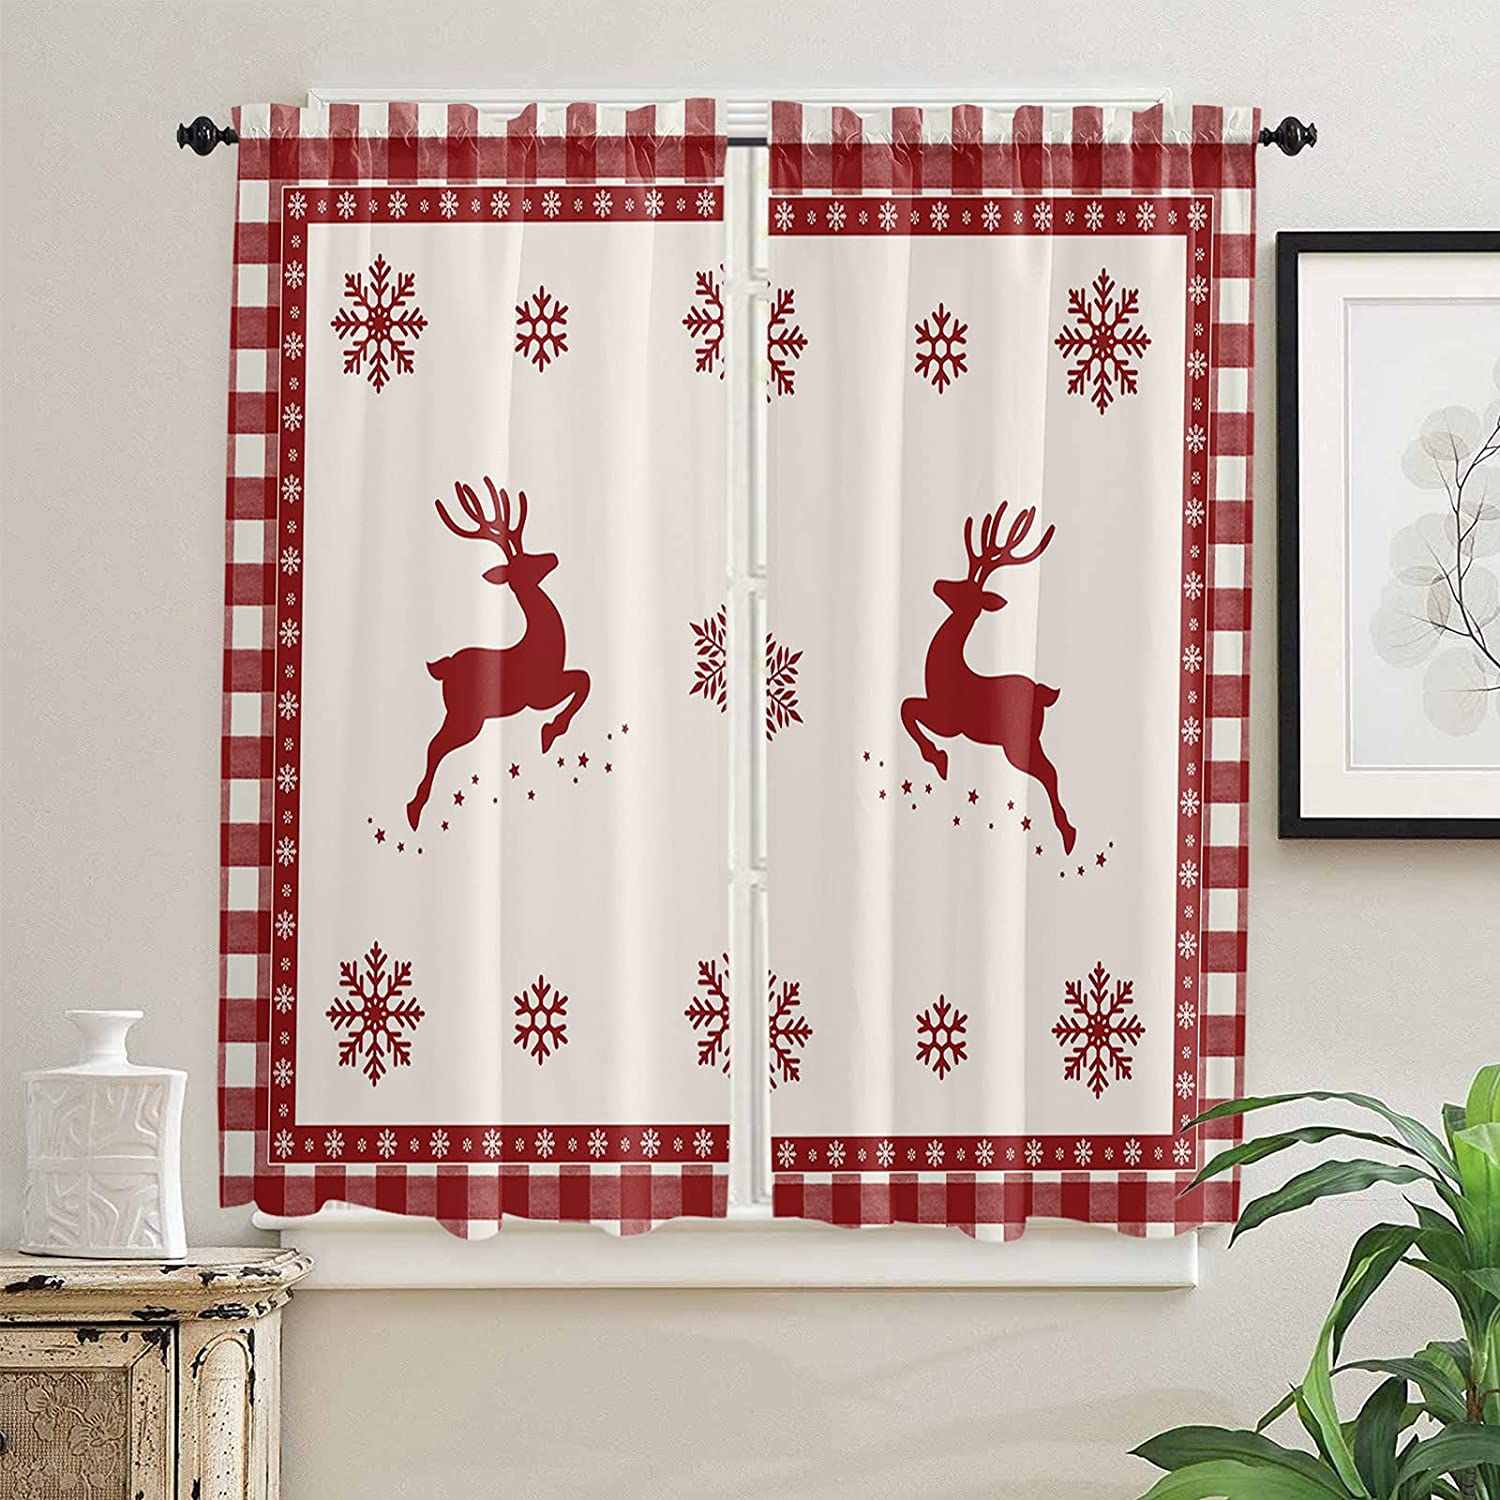 Christmas Snowflakes Kitchen Curtains 63 New Shipping Free Length for Inch Windows Super sale